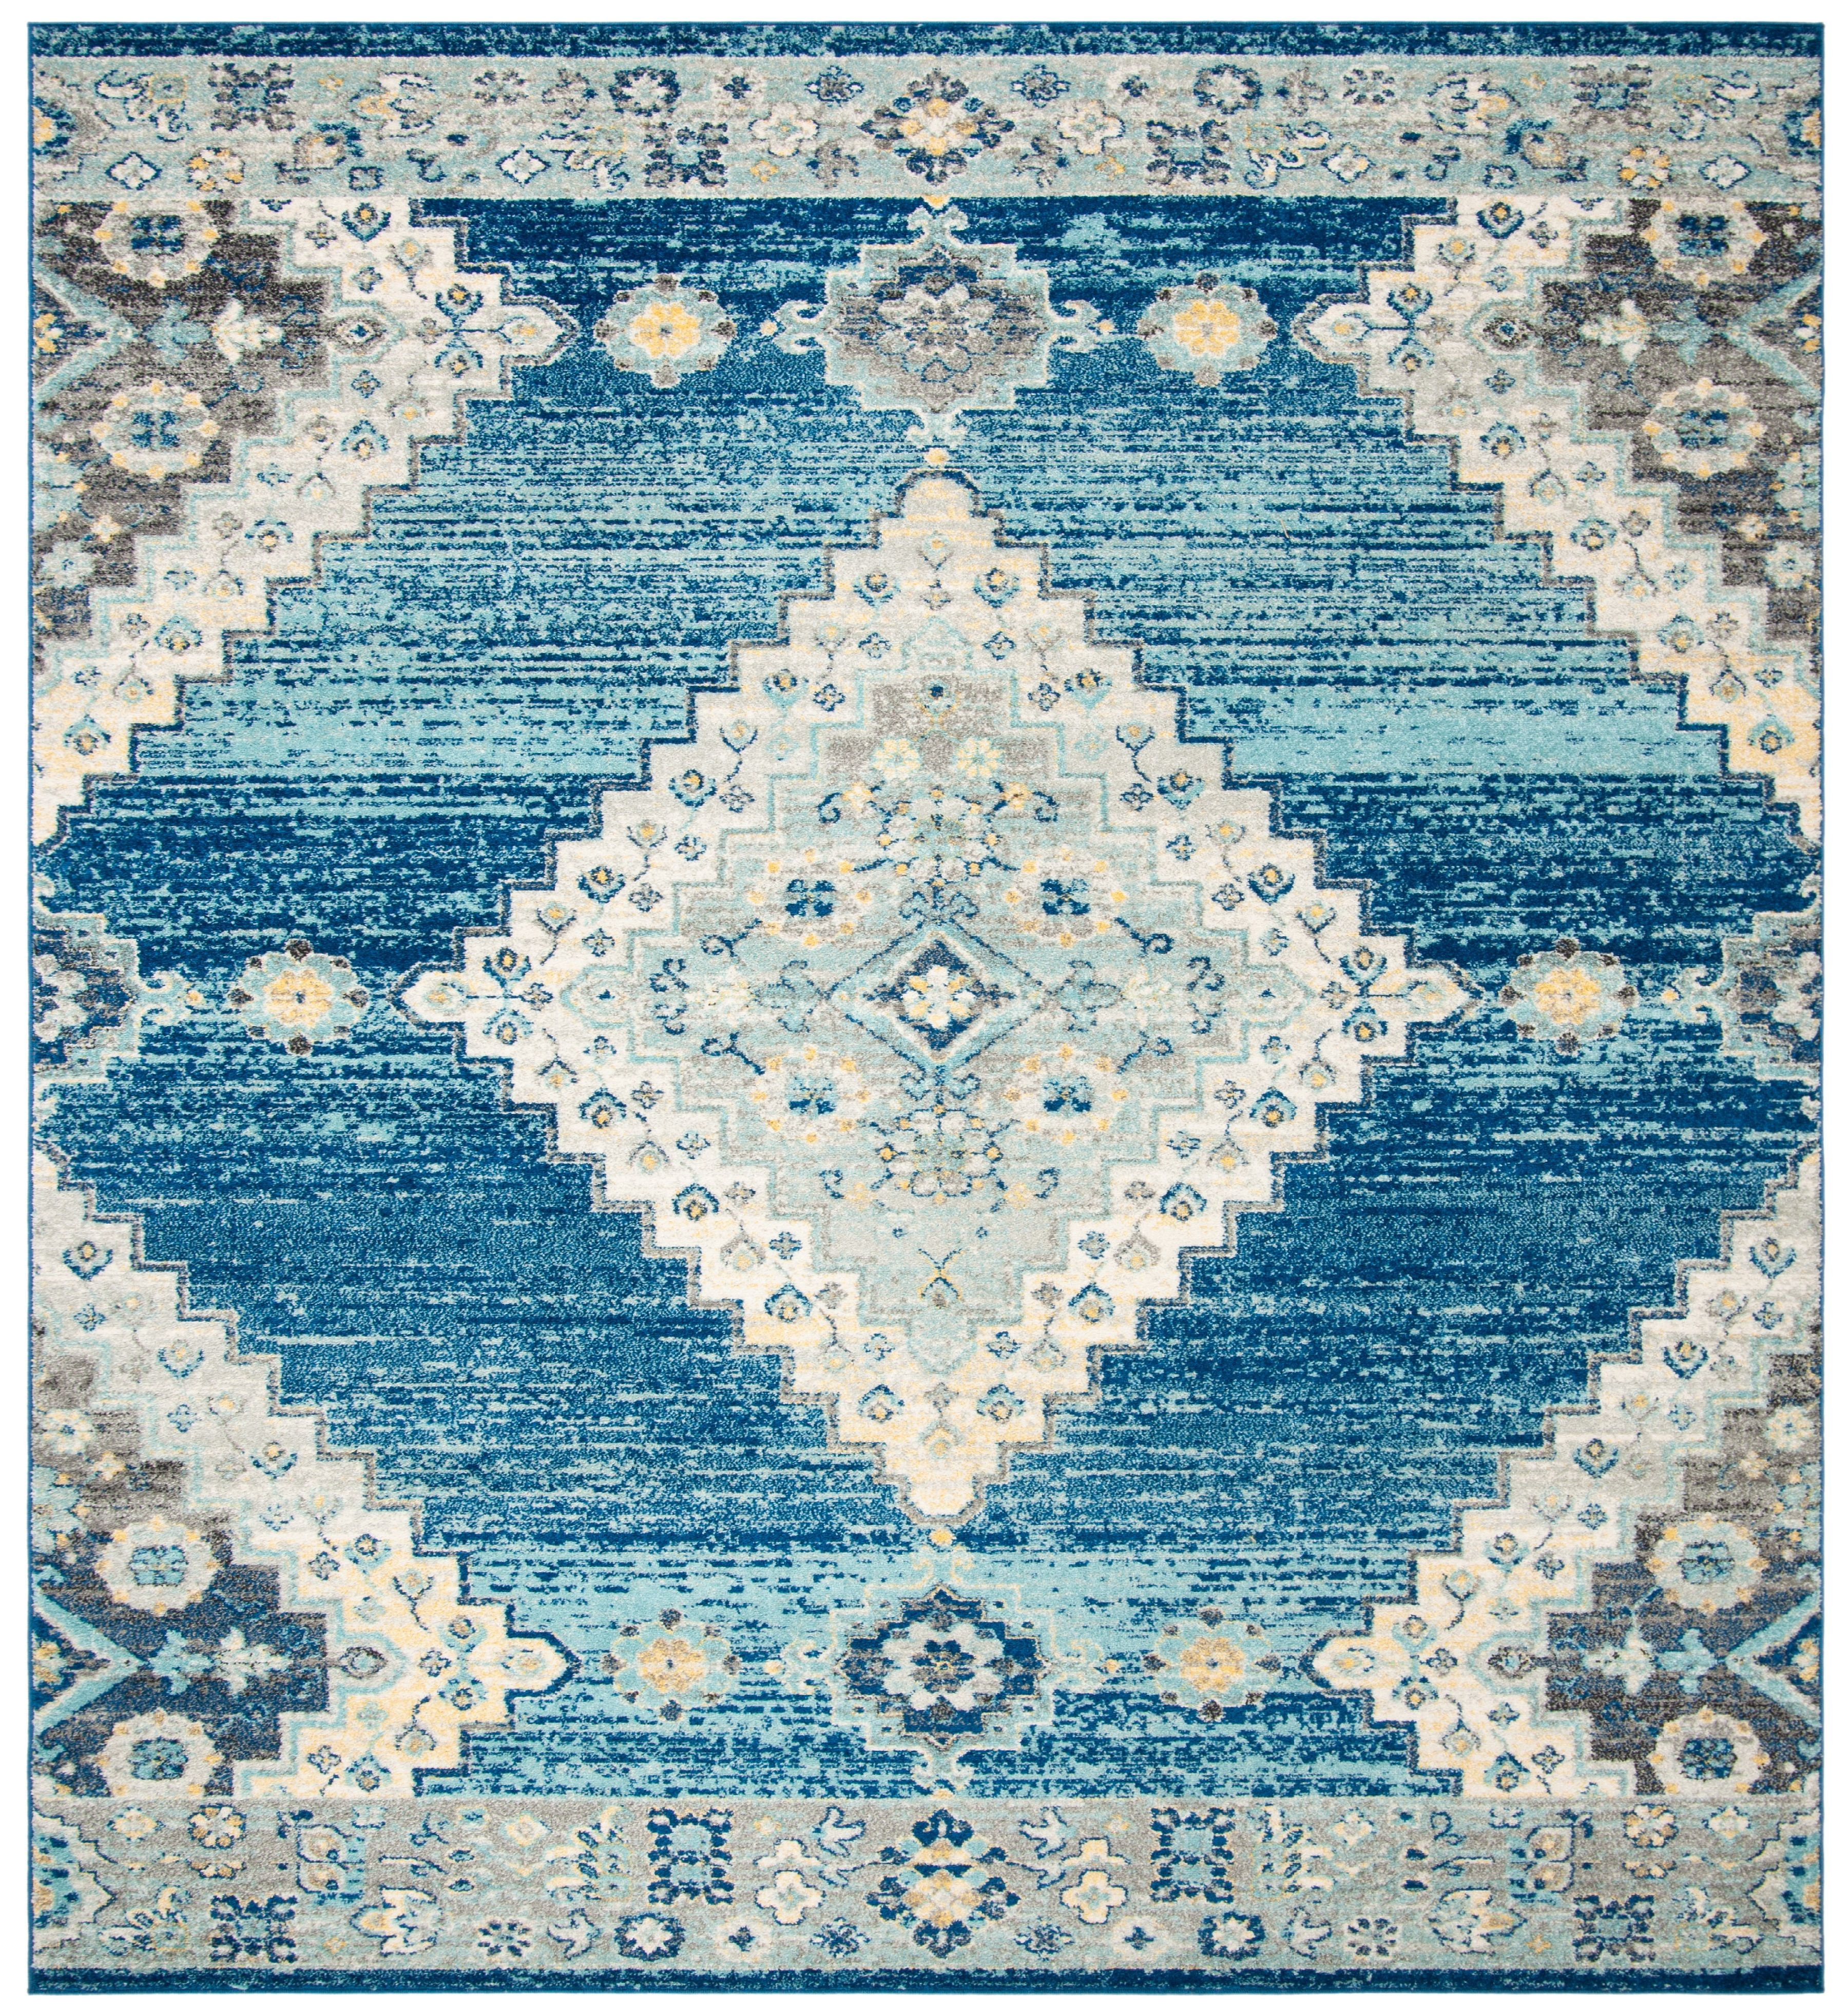 Madison Collection 6 7 X 6 7 Square Rug In Navy And Creme Safavieh Mad615n 7sq Area Rugs Area Rug Design Transitional Carpet